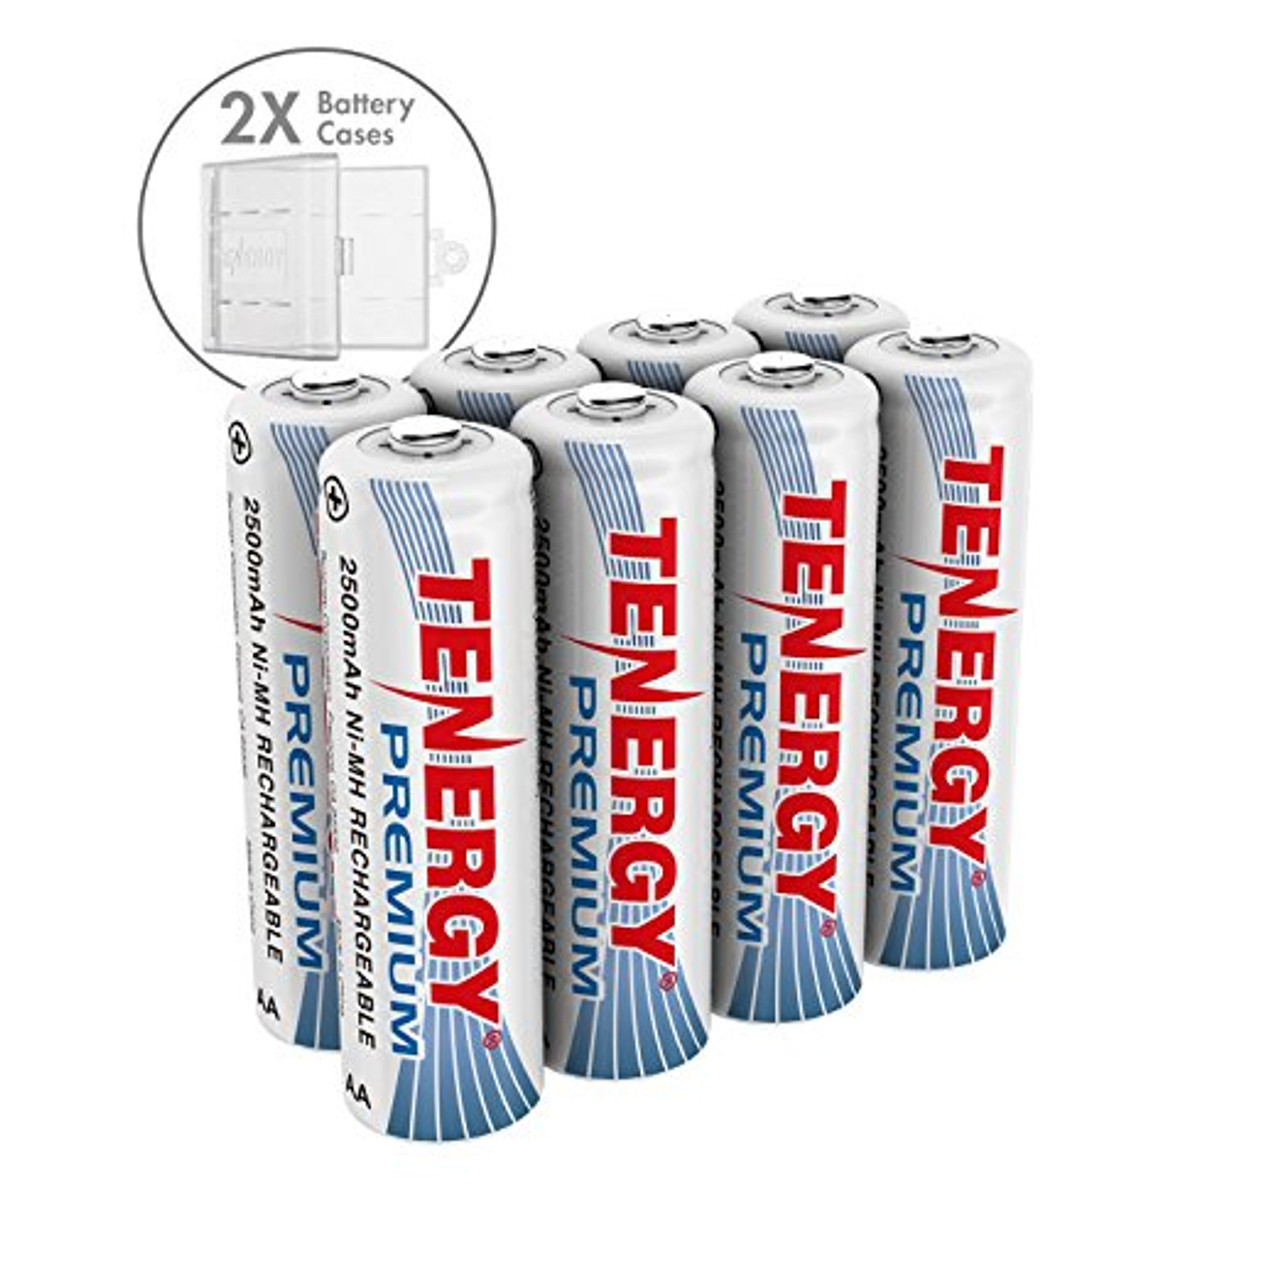 Combo: 8 pcs Premium AA NiMH Rechargeable Batteries w/ 2 Holders